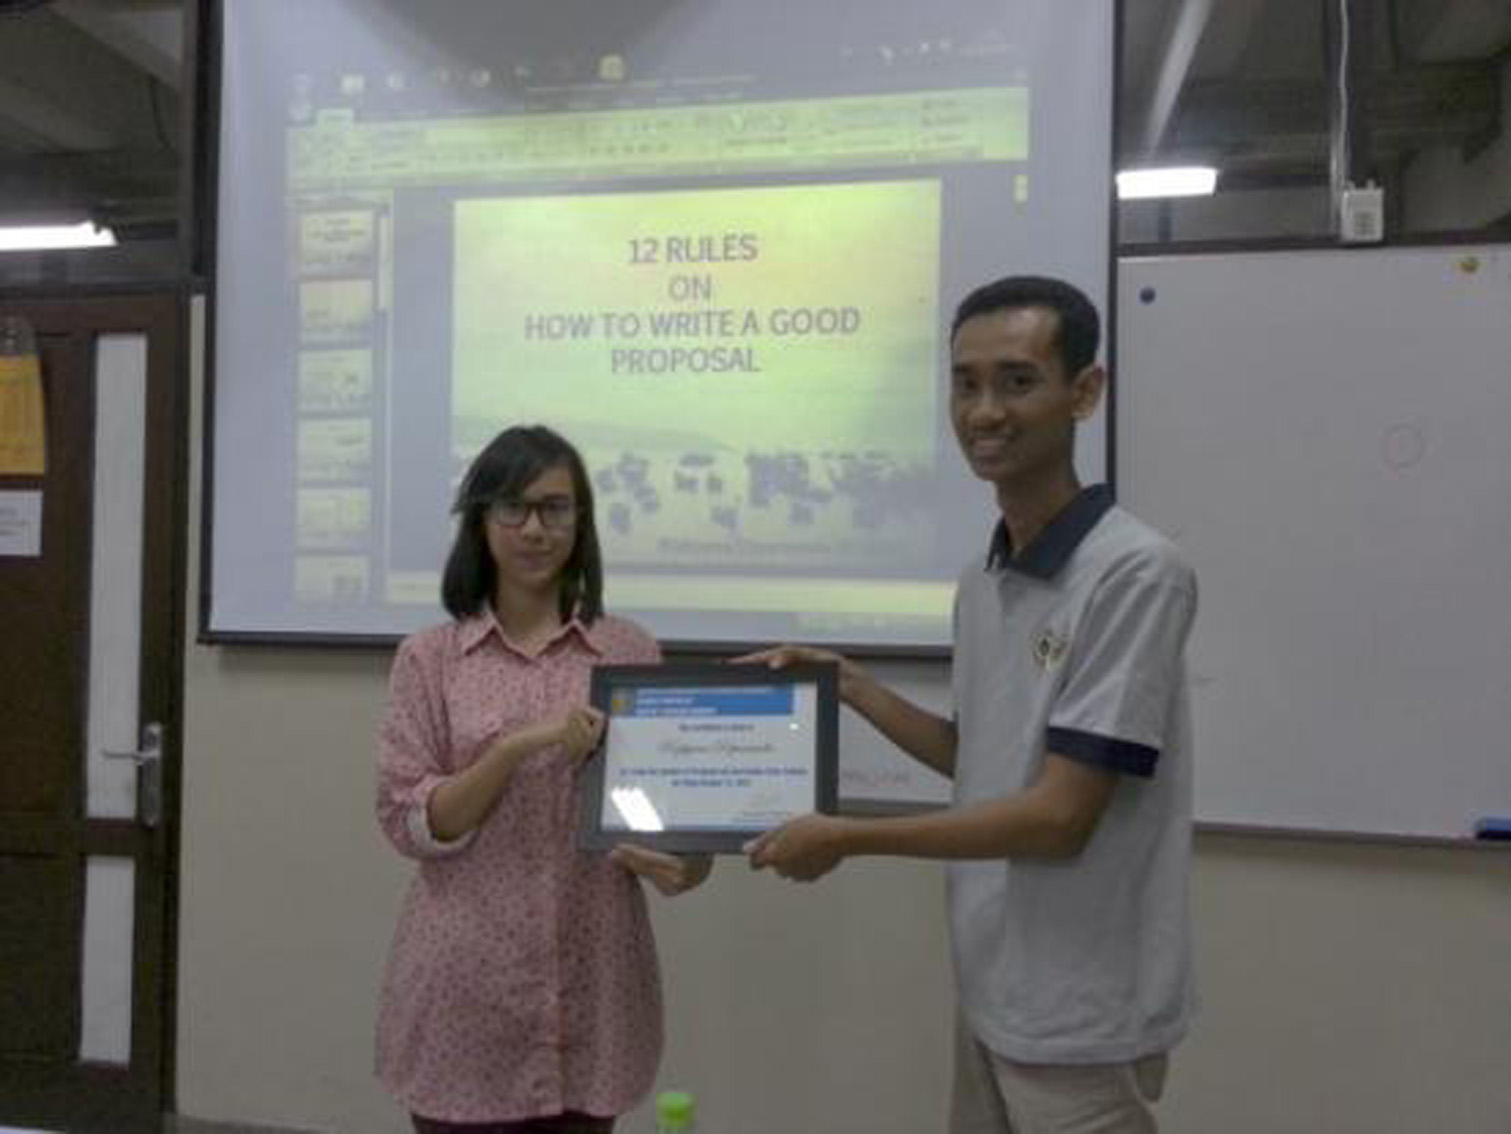 RizkyanaDipananda (left) was given a certificate from IwanSetiawan as the project officer (right).